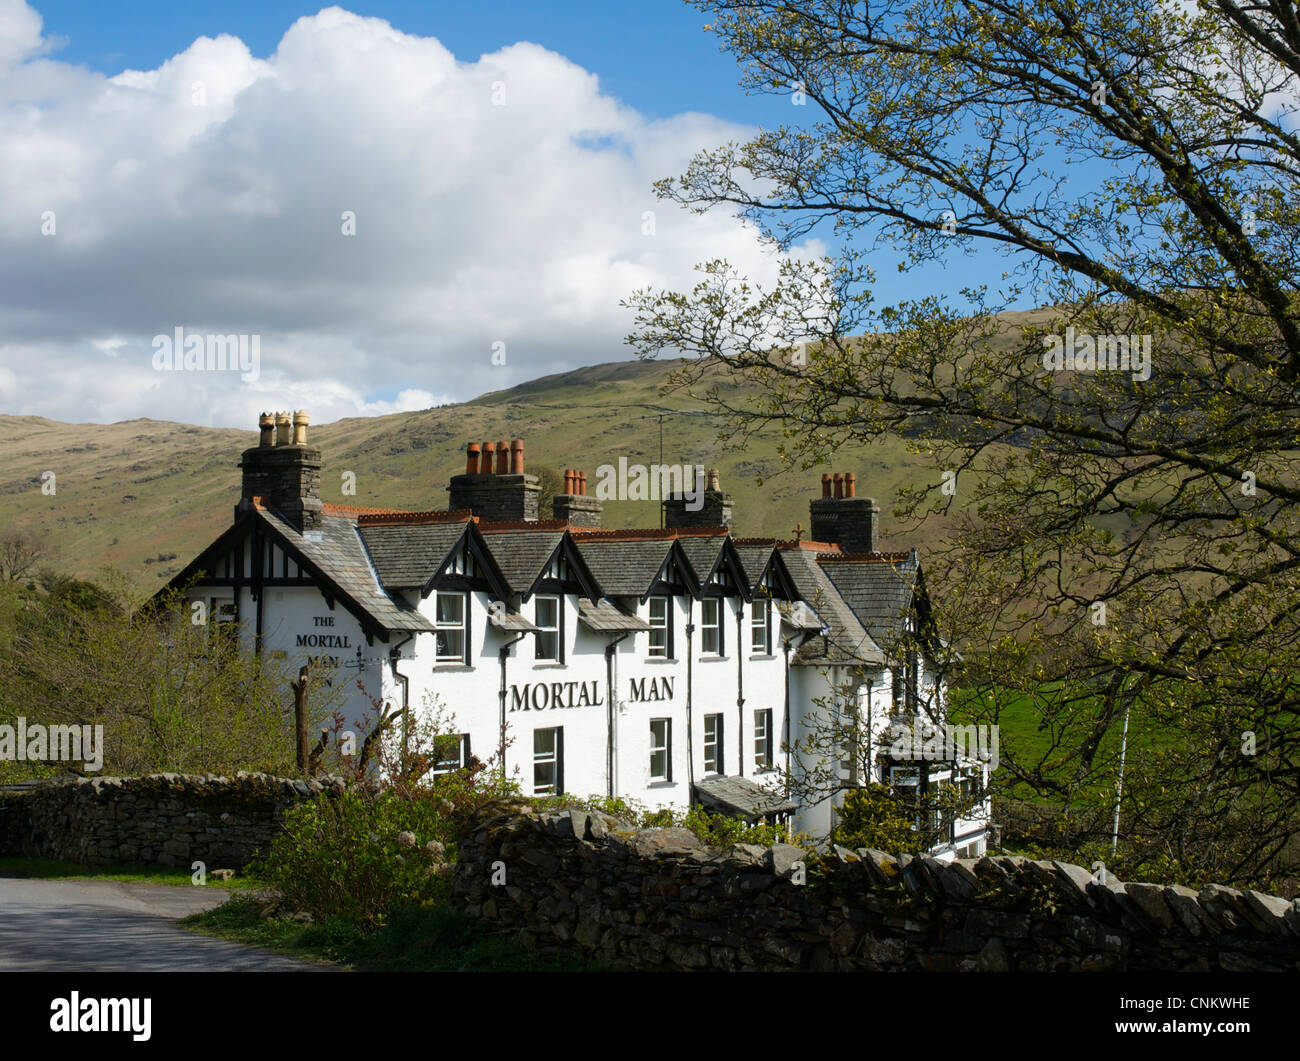 The Mortal Man pub, in the village of Troutbeck, Lake District National Park, Cumbria, England UK - Stock Image